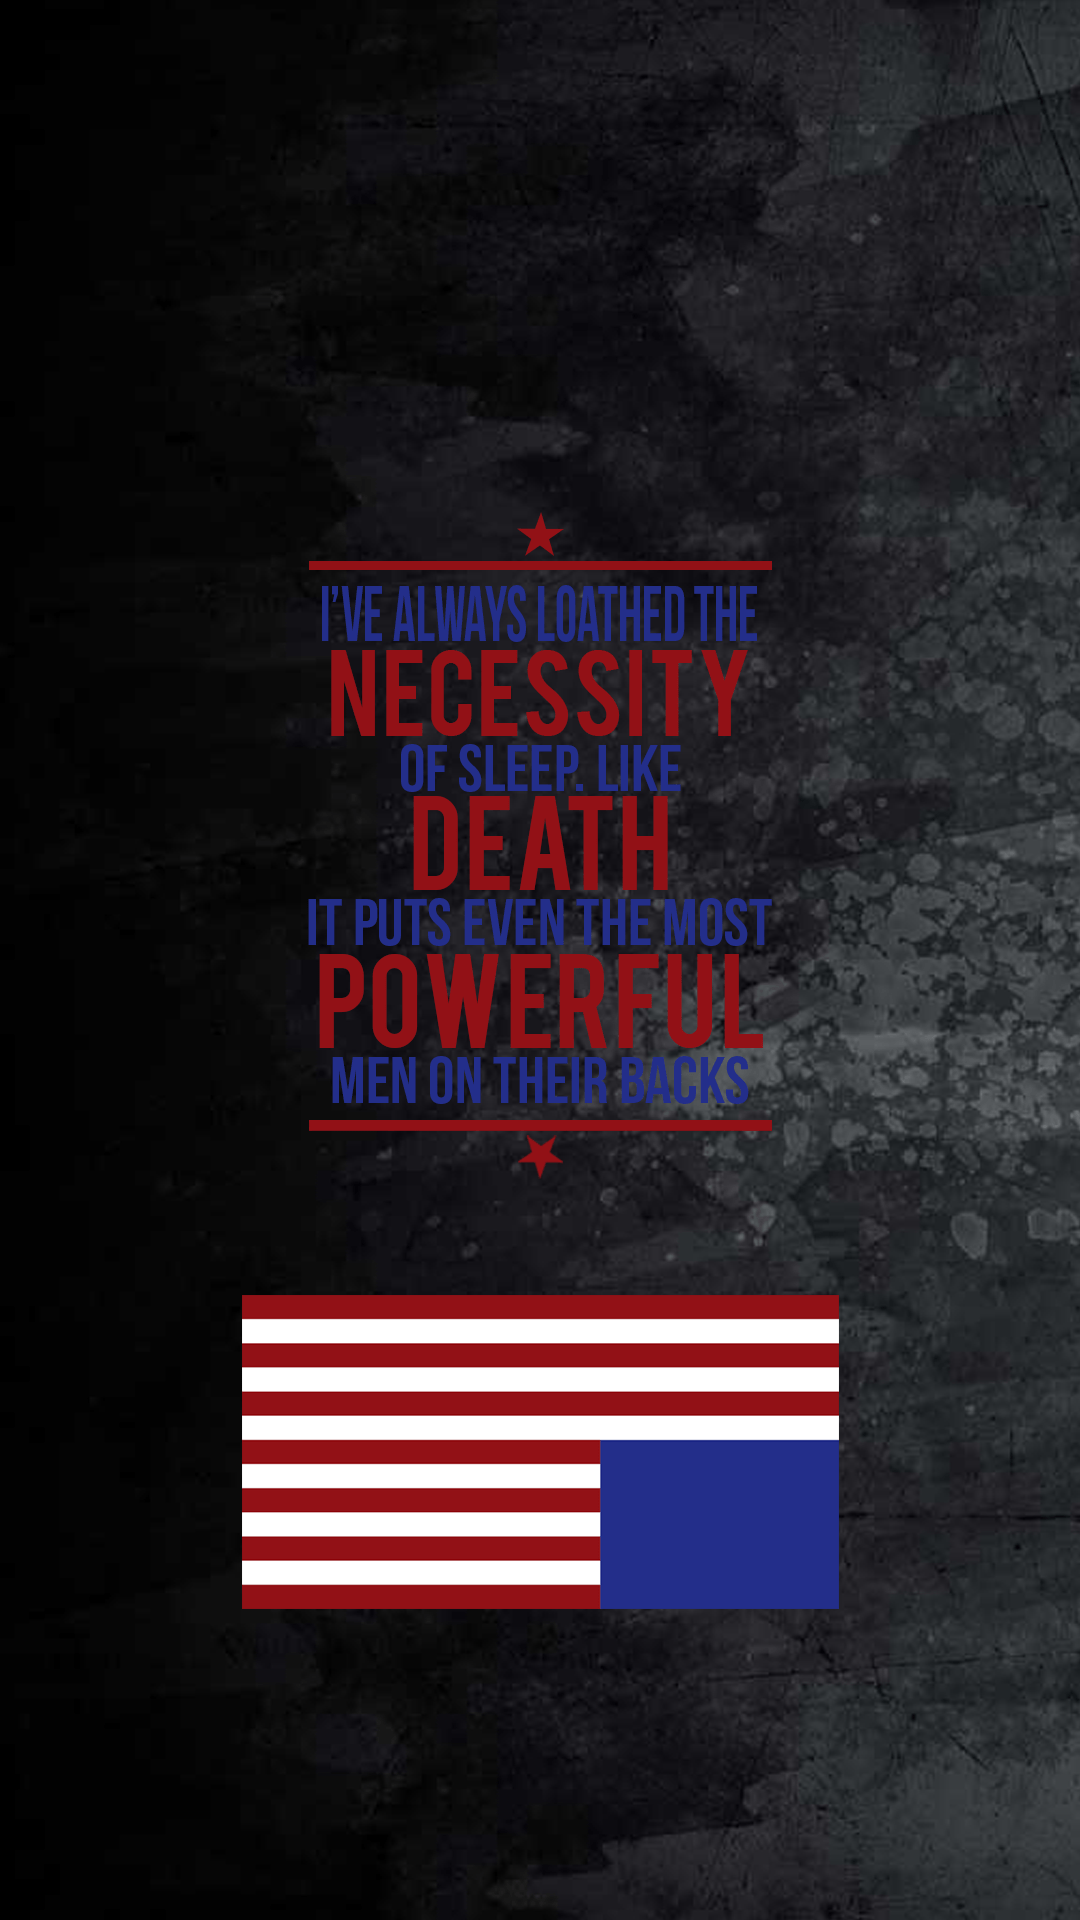 Batman Quotes Wallpaper House Of Cards Hd Wallpapers For Iphone 7 Wallpapers